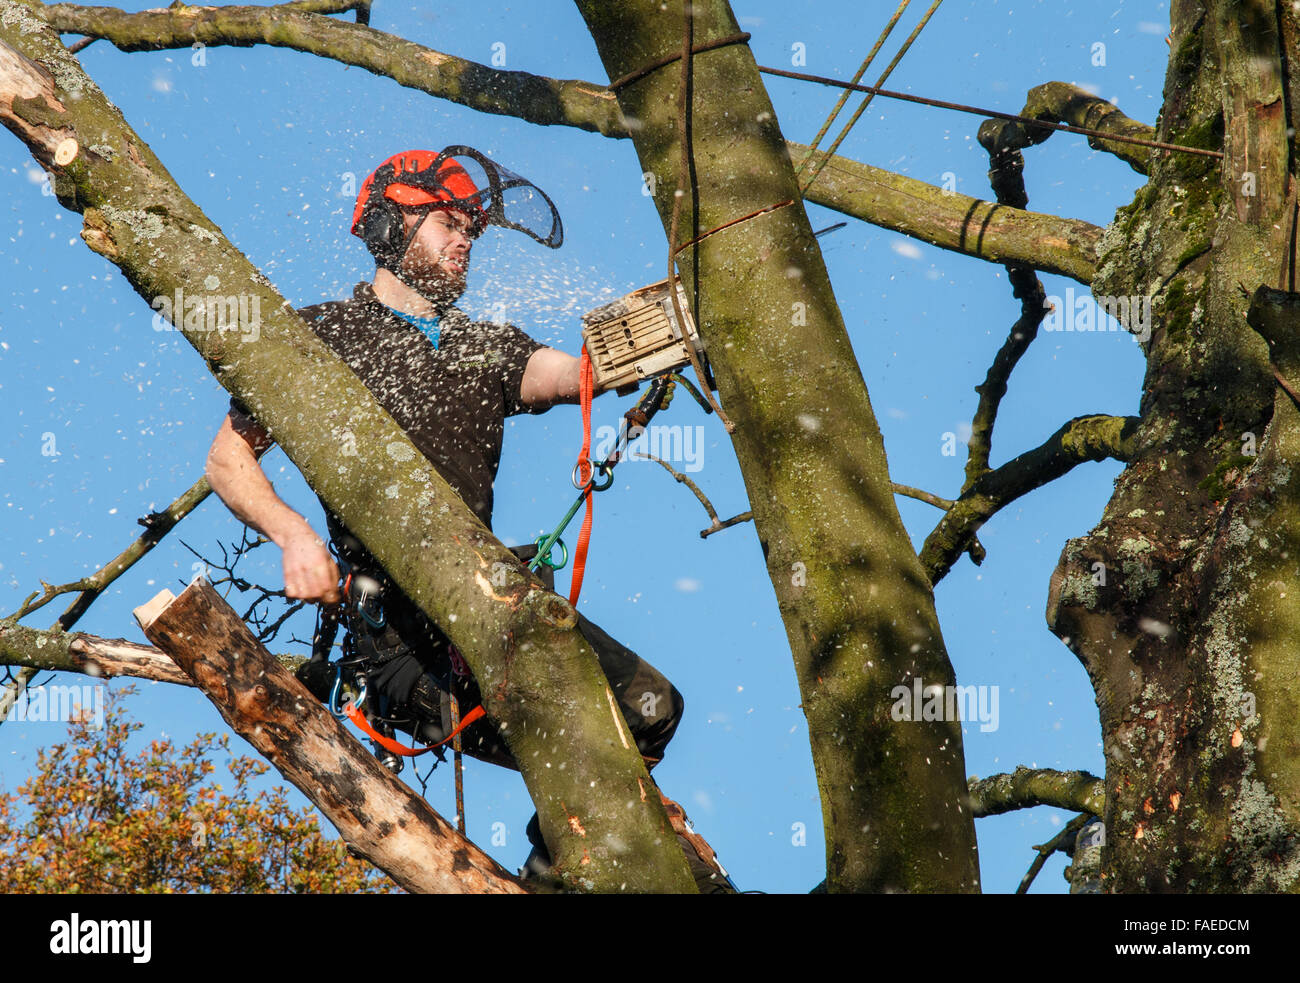 Tree surgeon in the top of a tree cutting branches with a chainsaw.  Chippings and motion blur - Stock Image